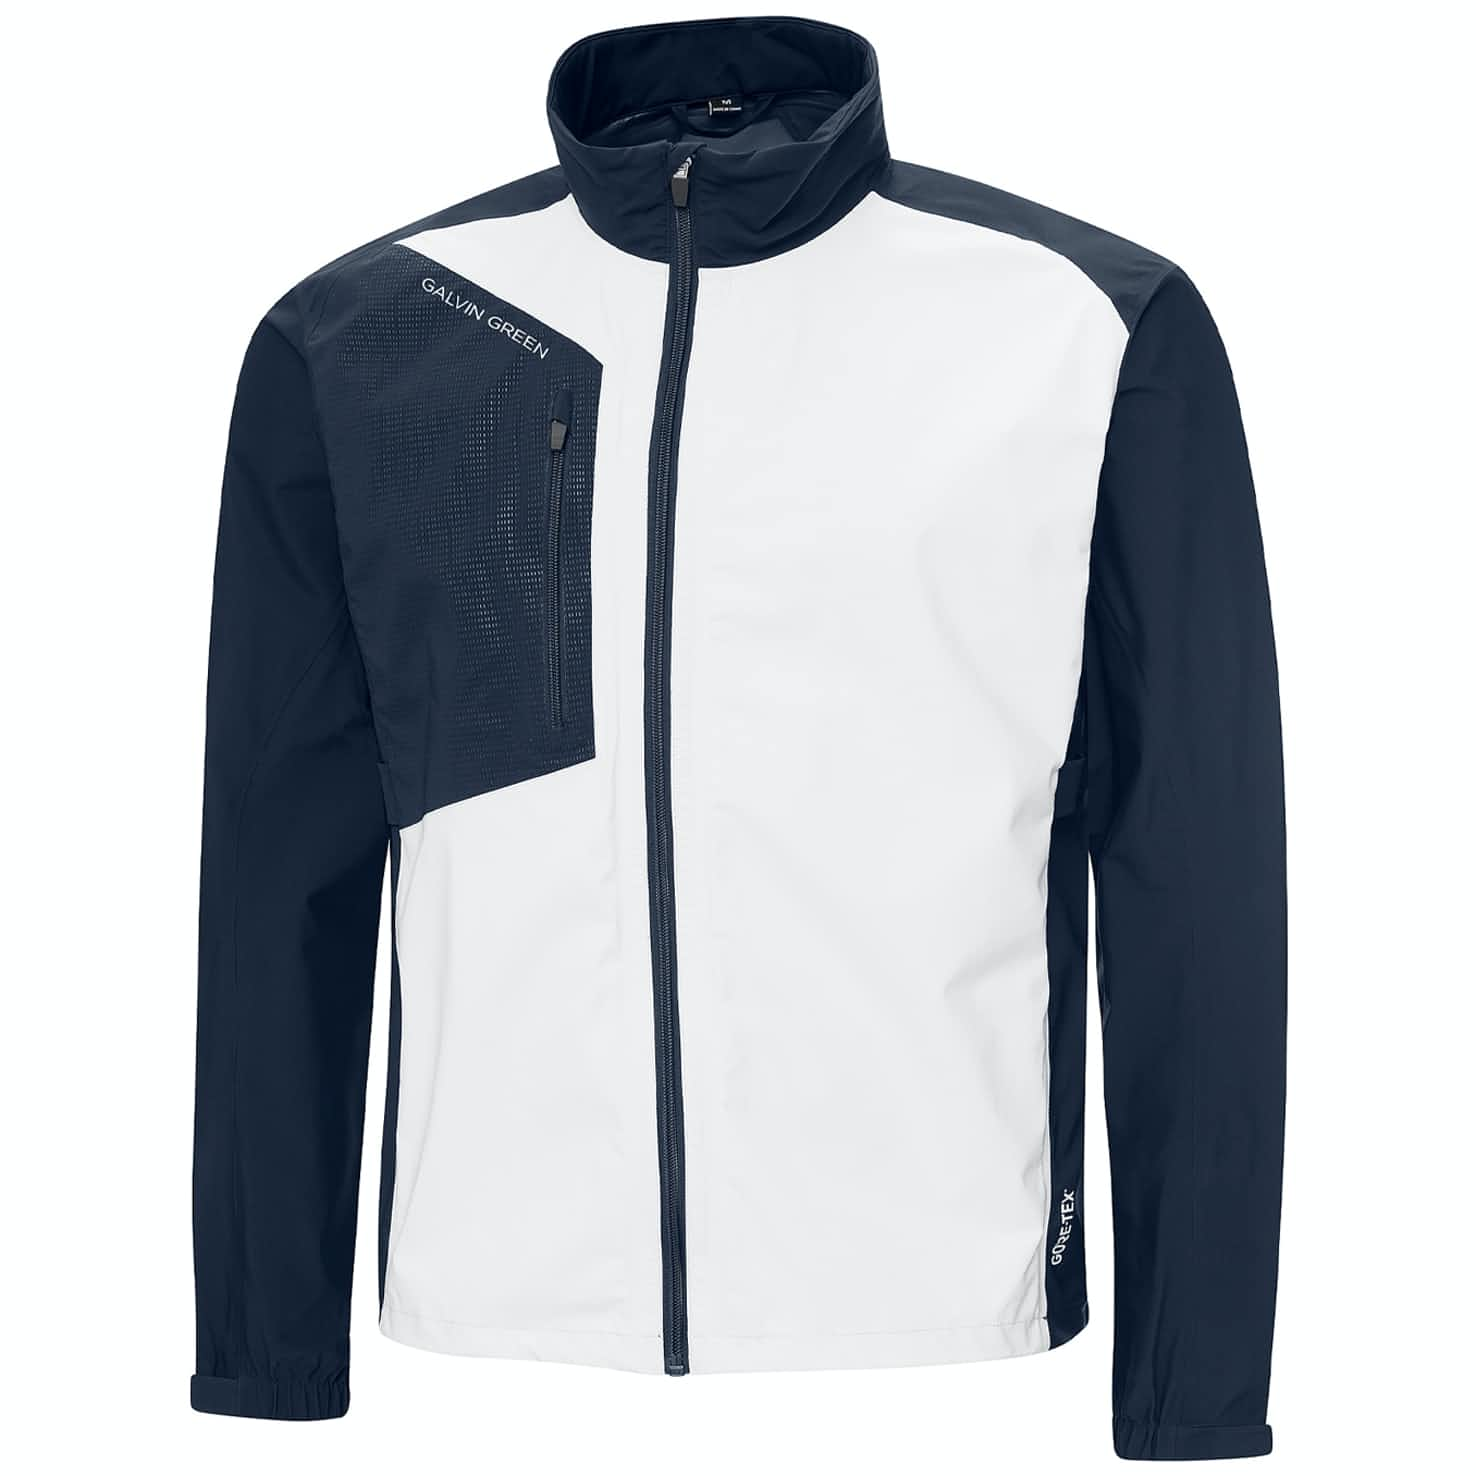 Andres Gore-Tex Stretch Jacket Navy/White - 2019